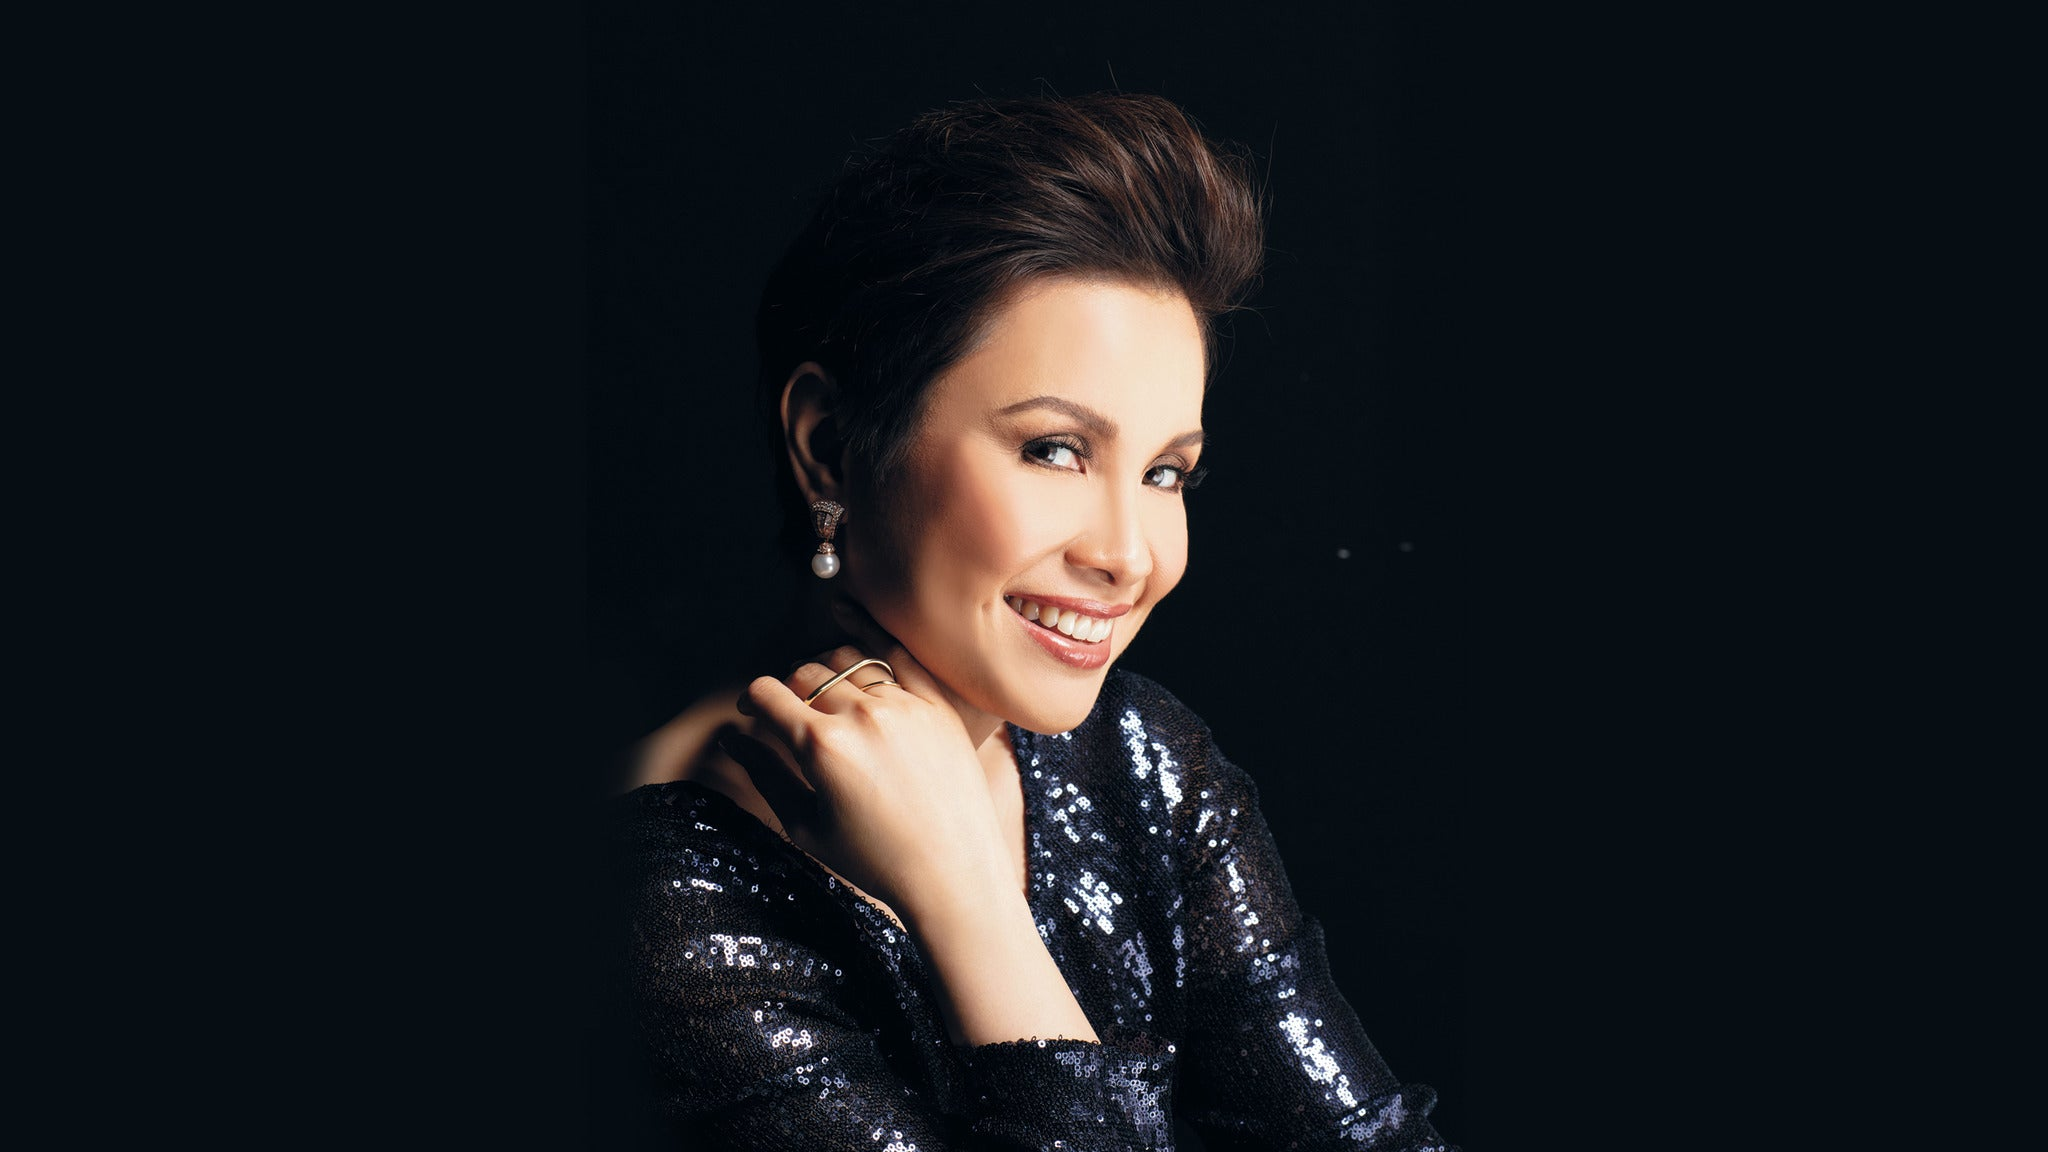 Lea Salonga in Concert at Neal S Blaisdell Concert Hall